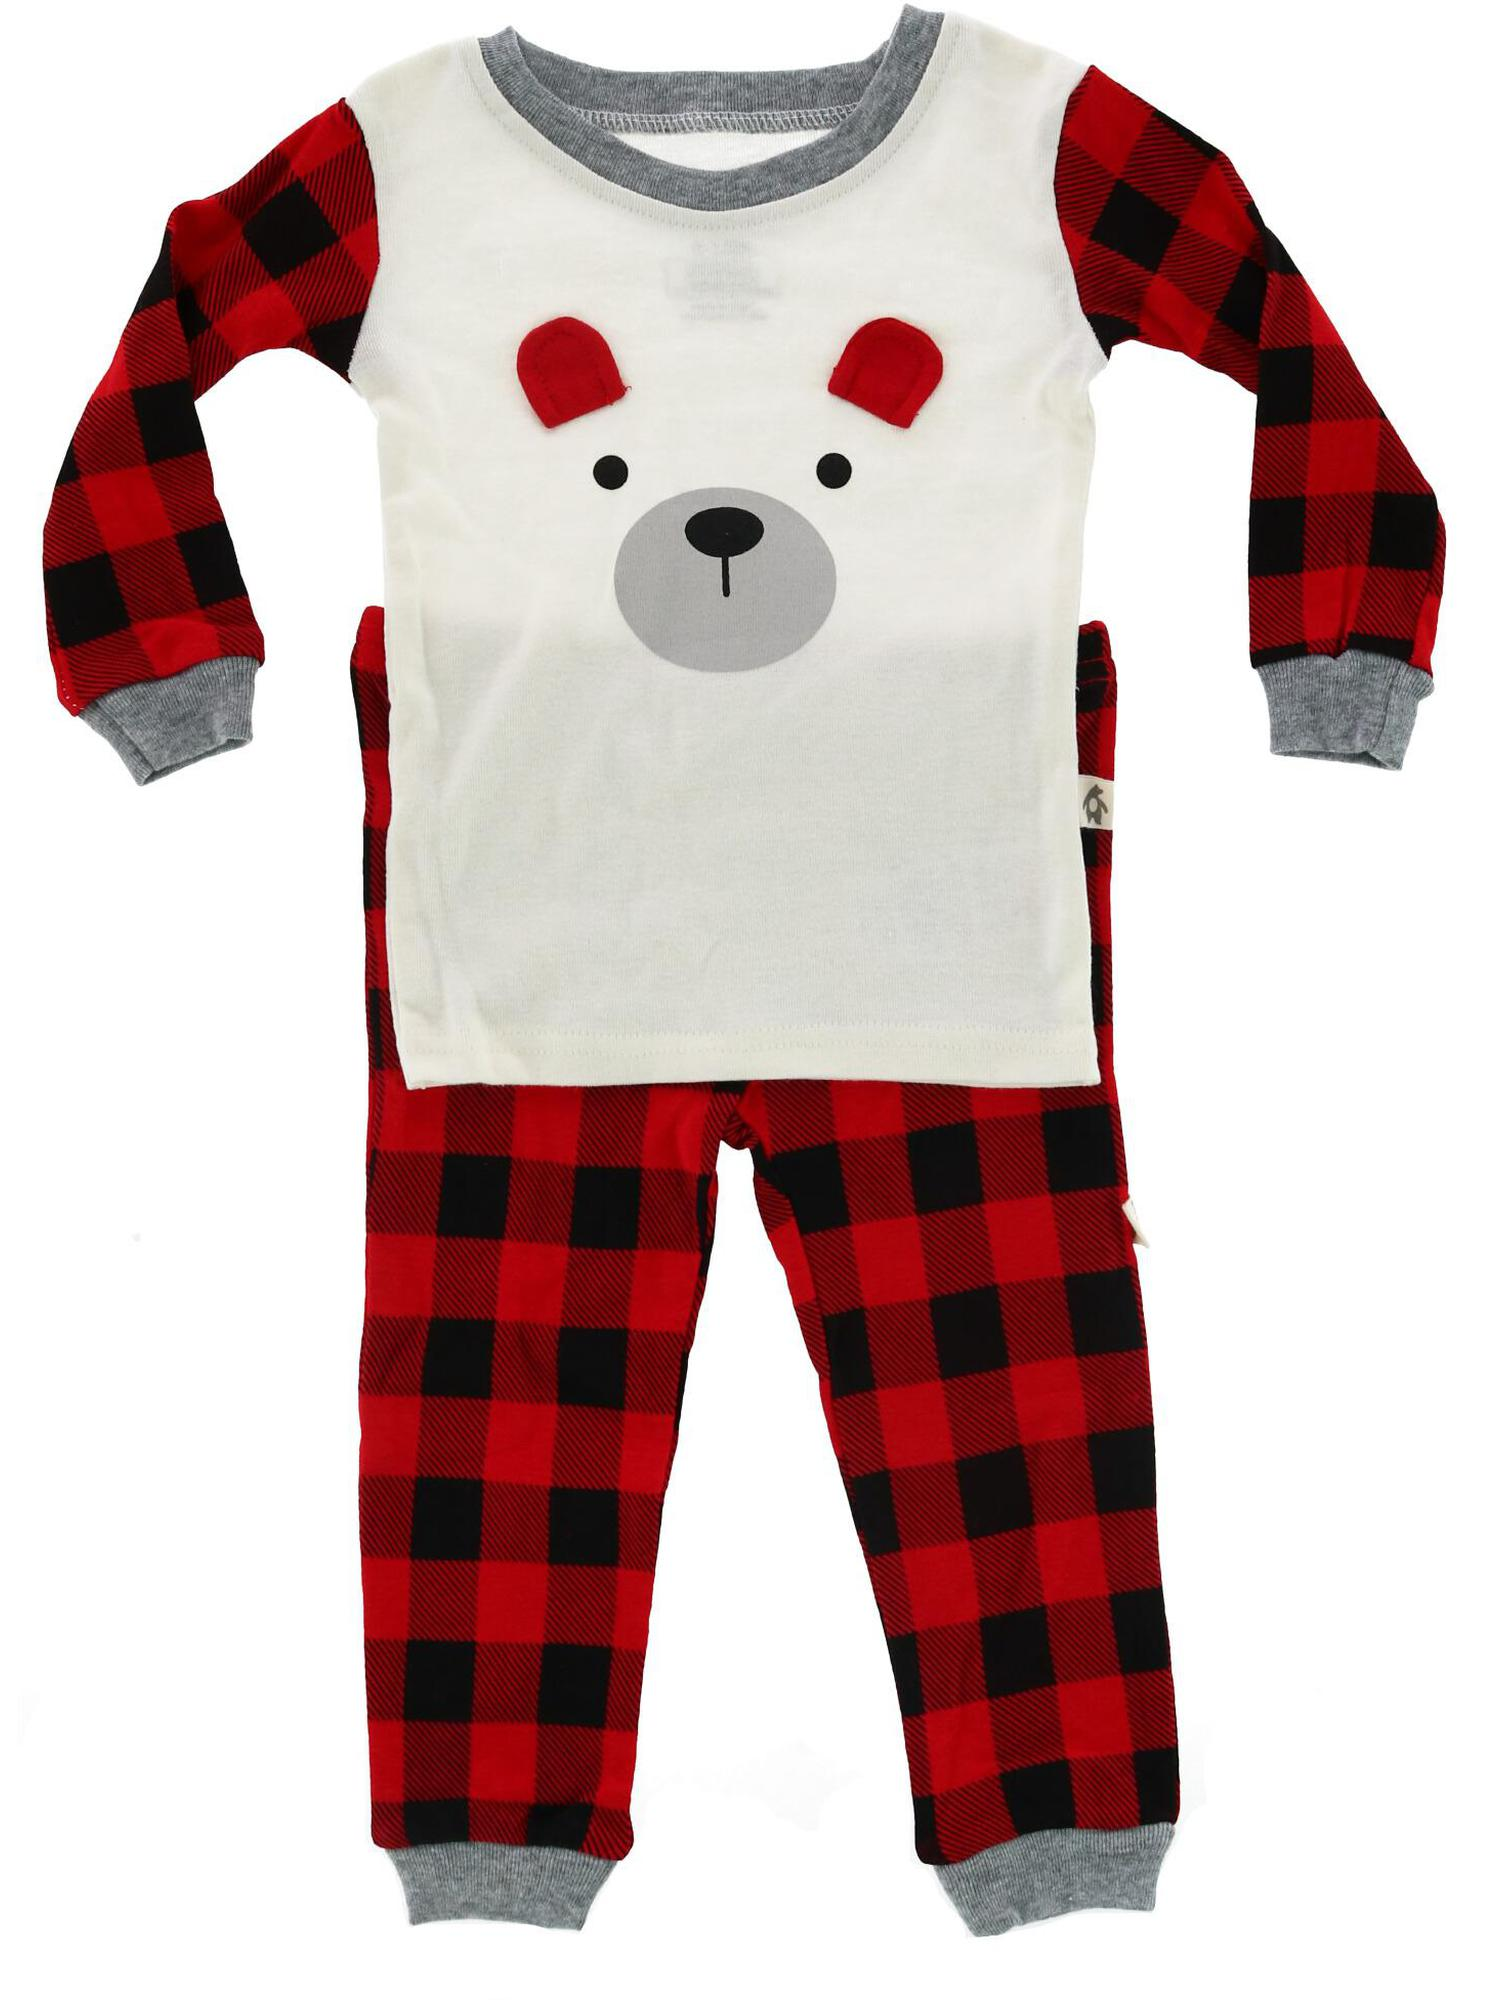 Snugabye - Snugabye Infant Buffalo Plaid 2-Piece Winter ...